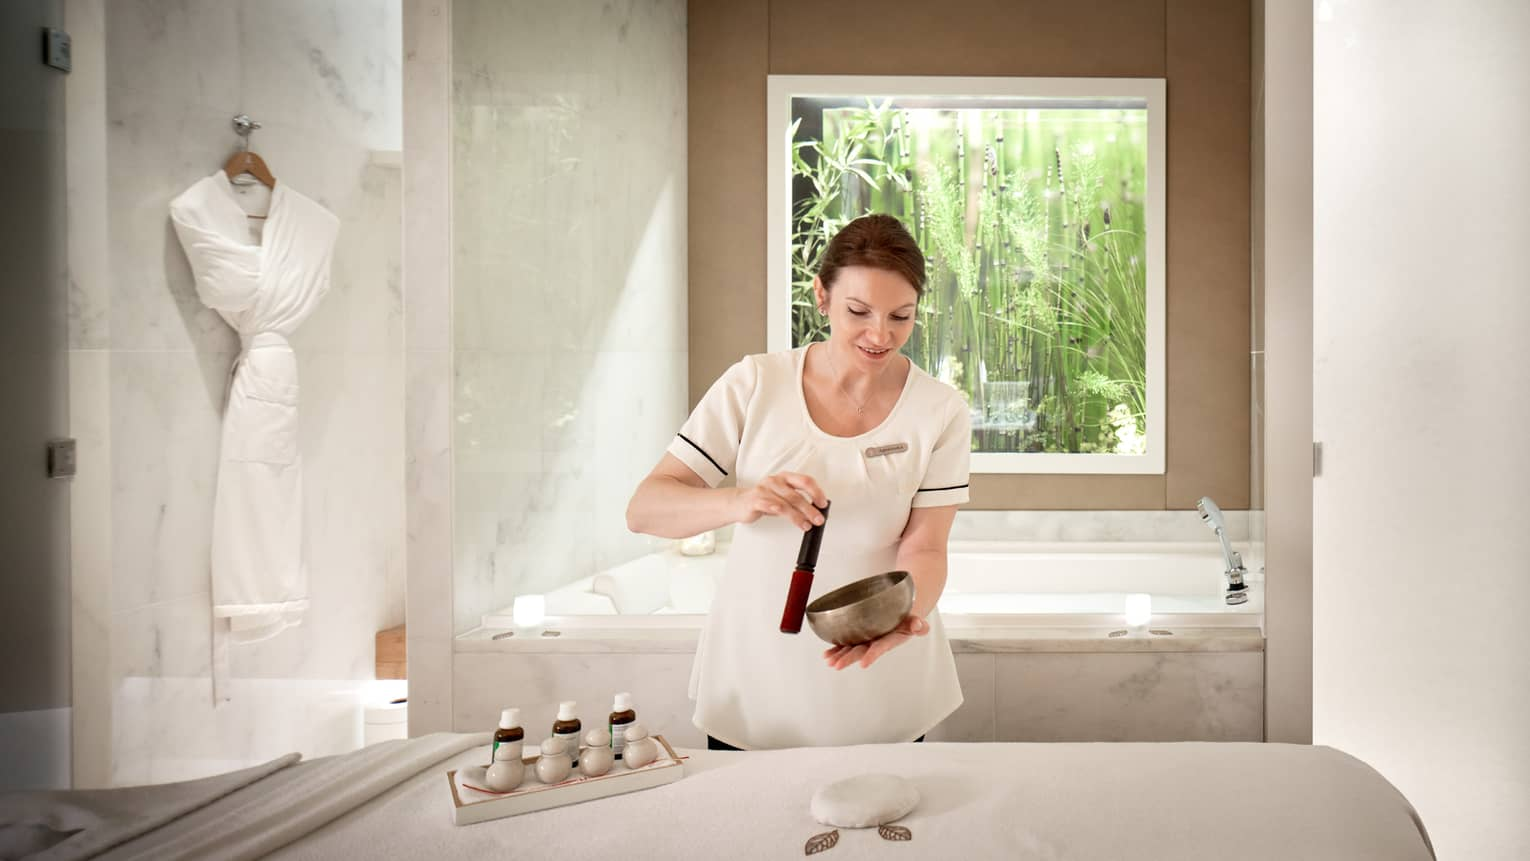 Spa attendant in white top, smiling and using singing bowl beside white spa table, robe and tub in backdrop